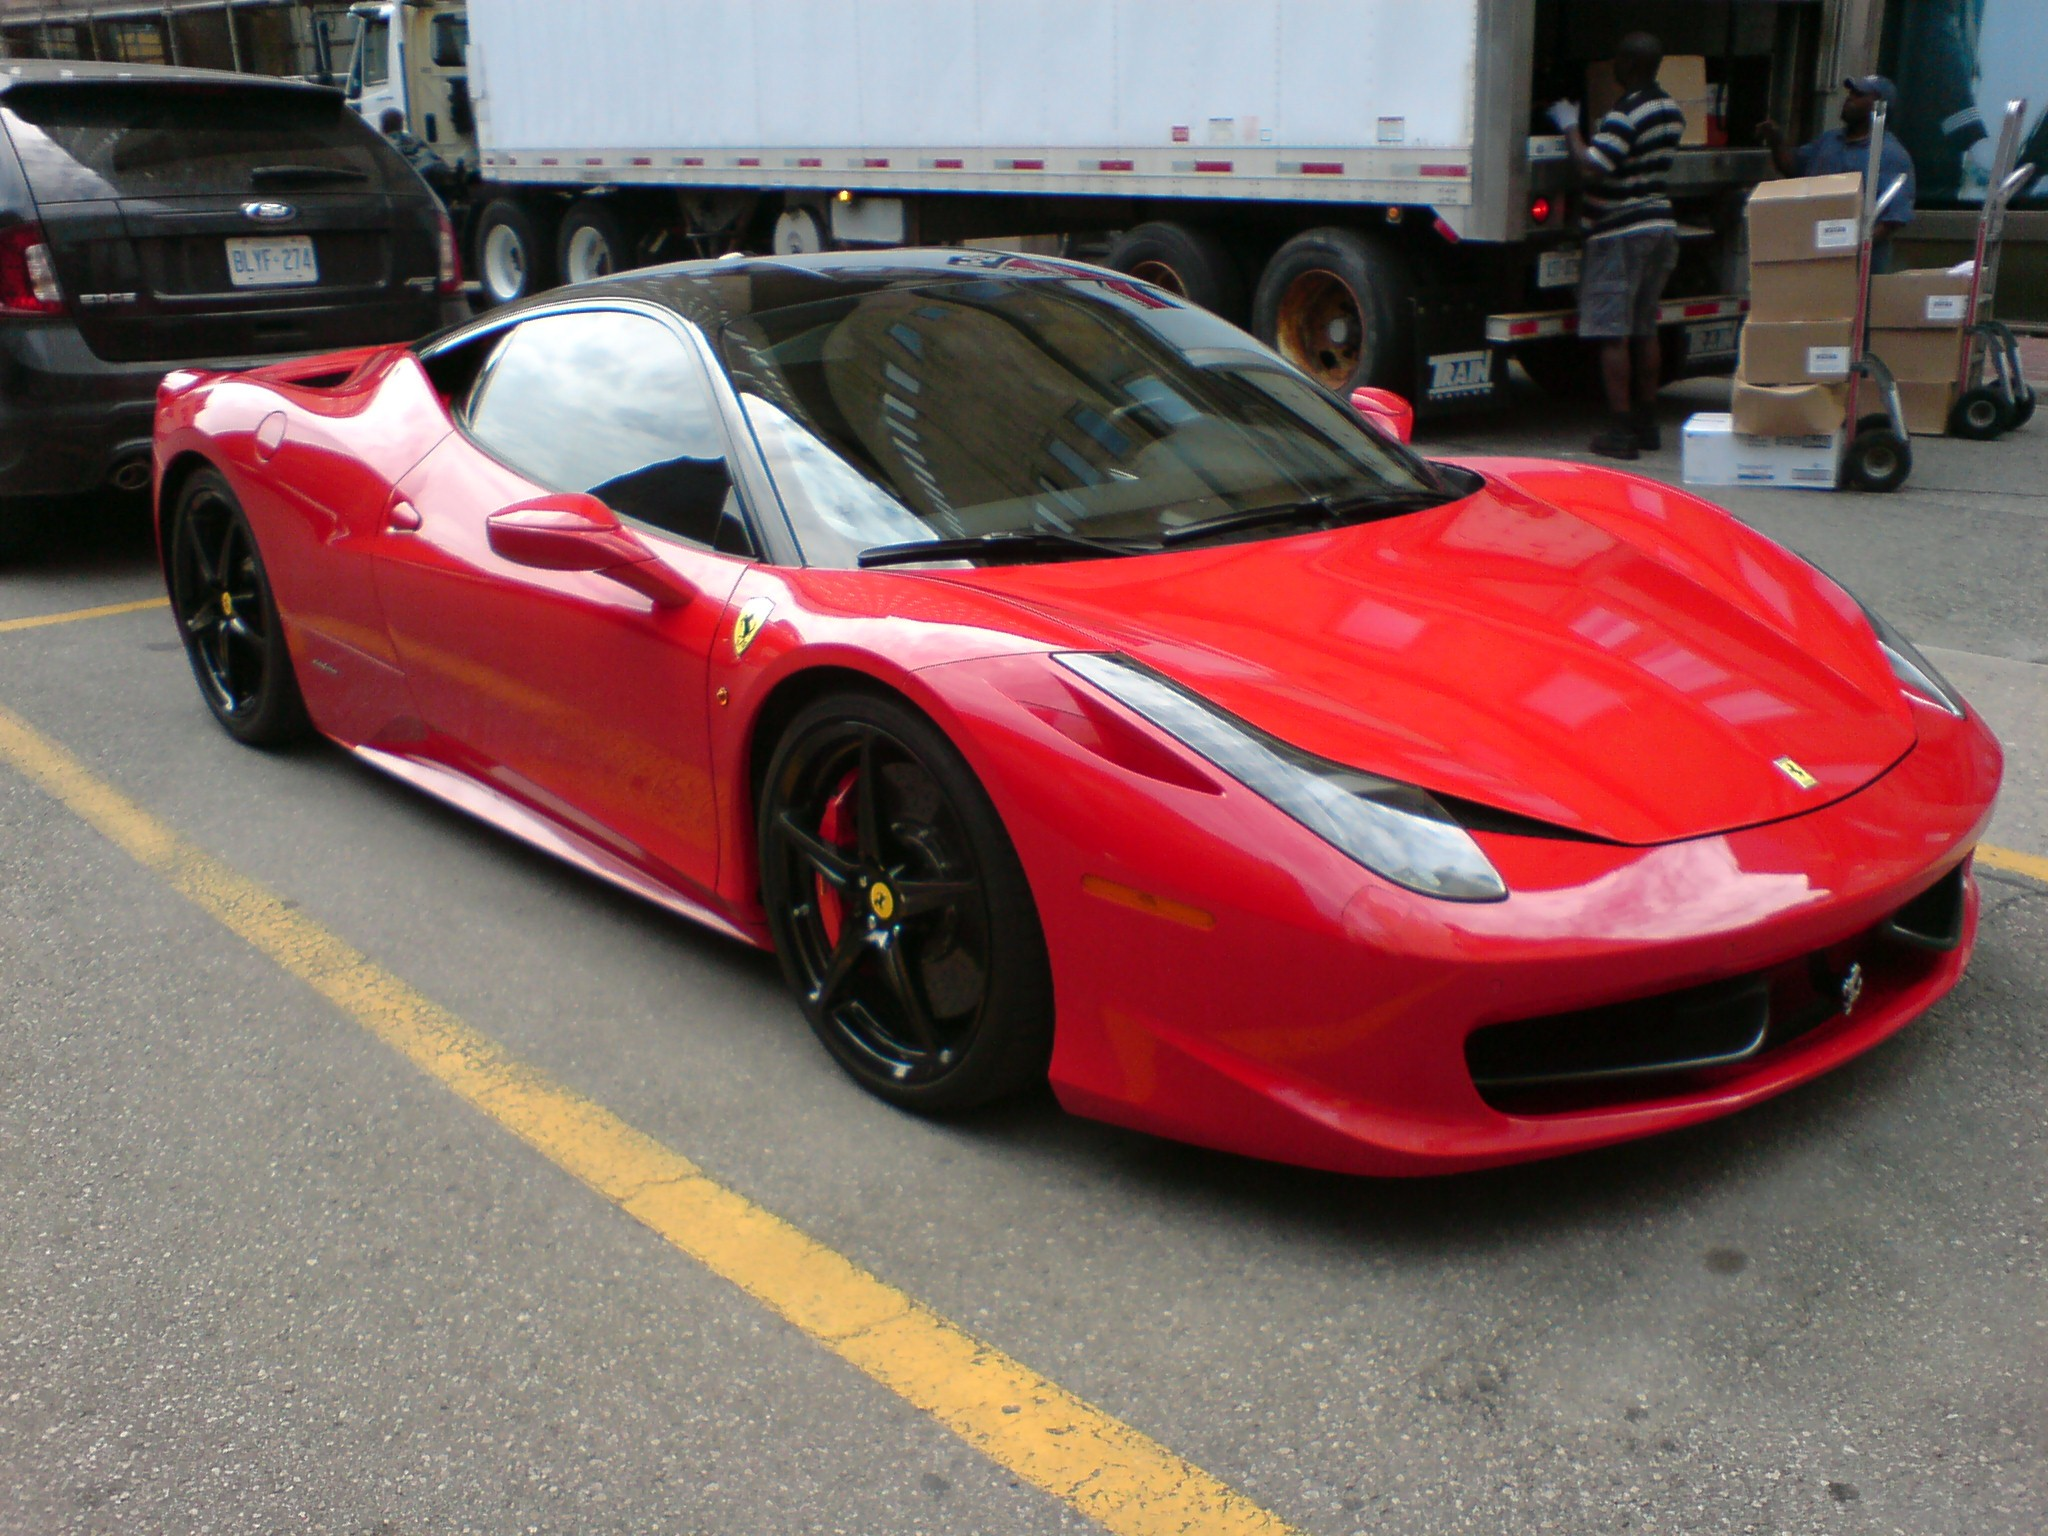 458 red cars-#main